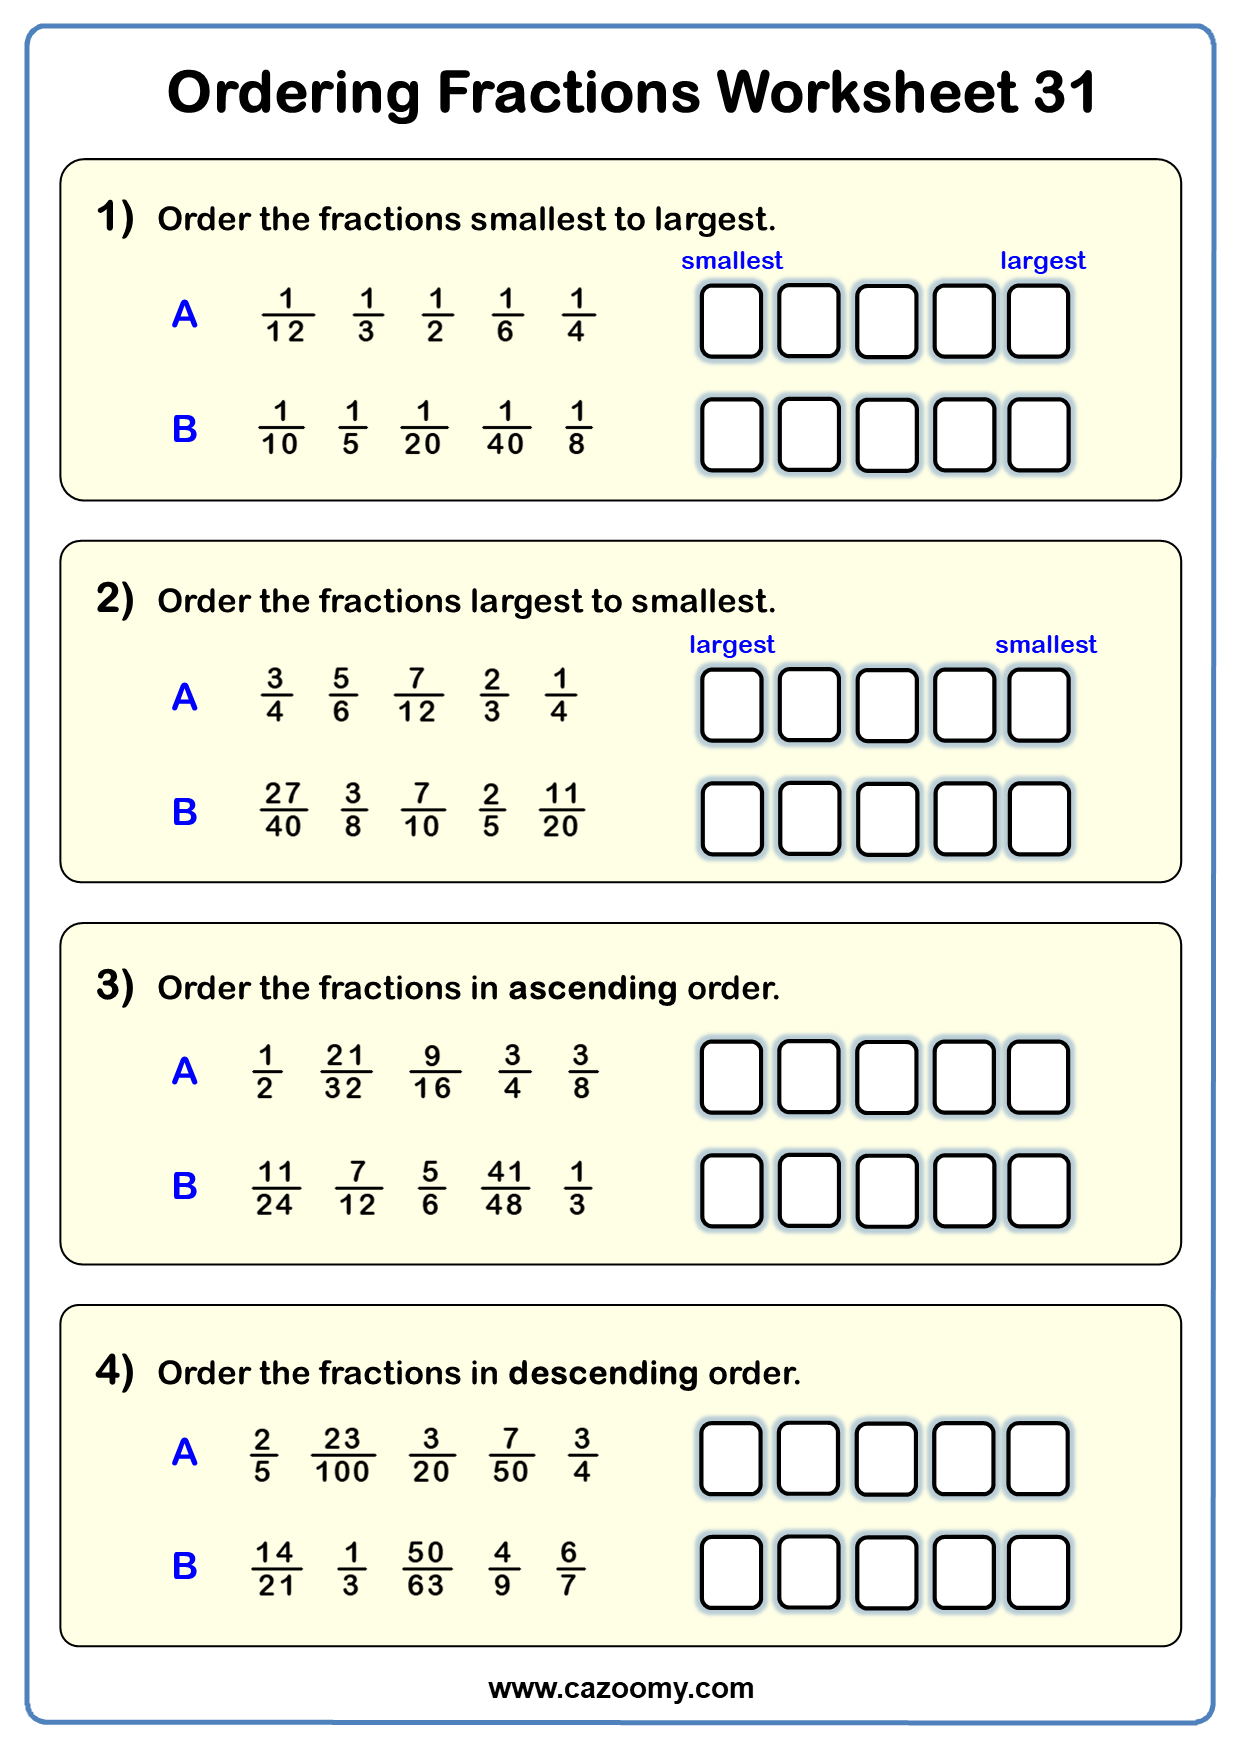 Ordering Fractions Worksheet 1